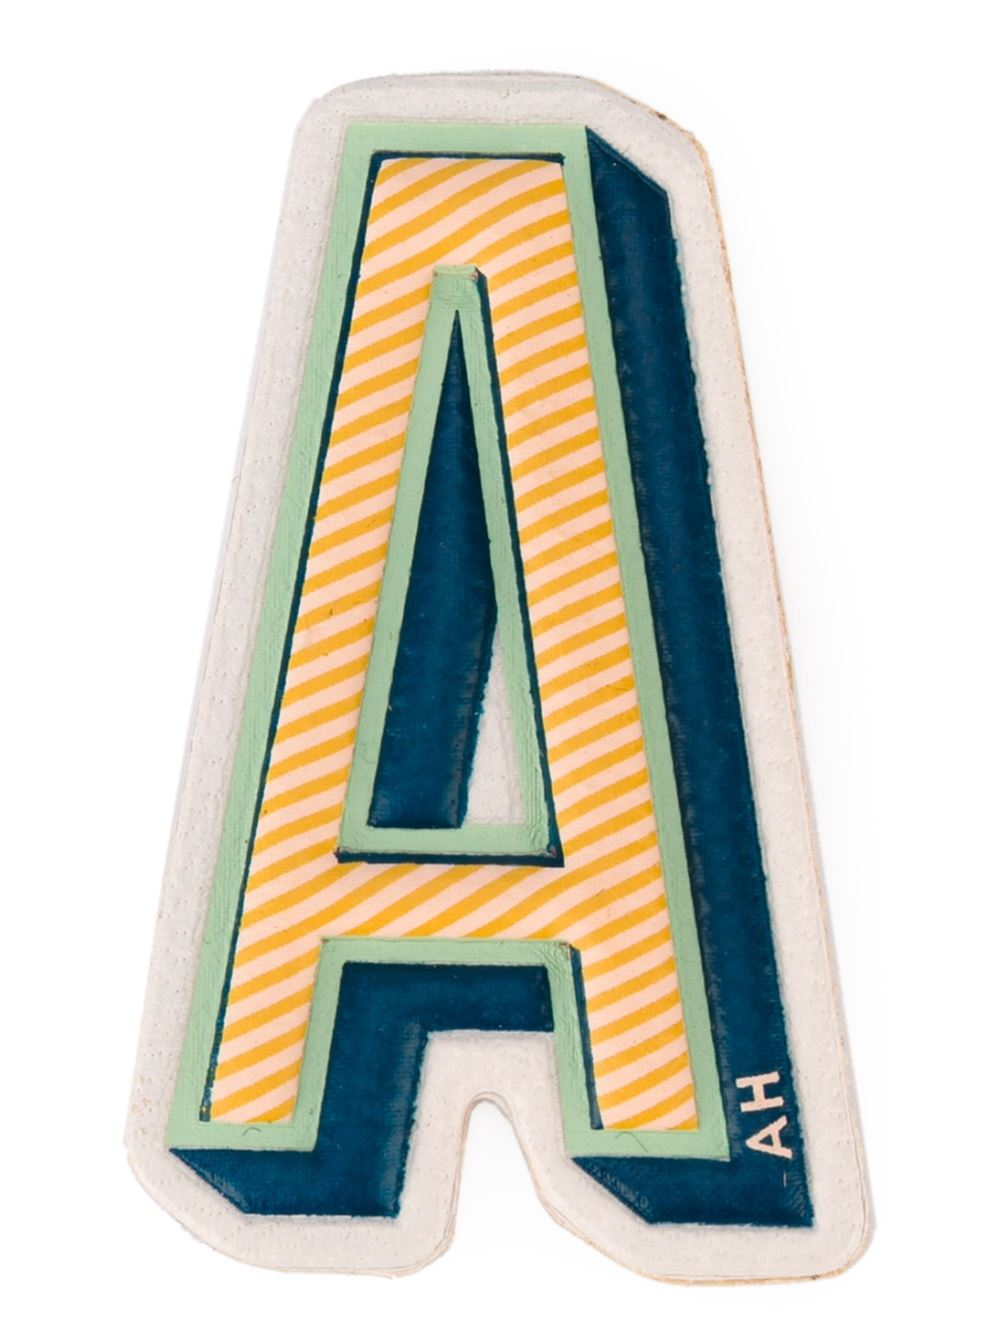 Anya Hindmach STICKERS ALPHABET A